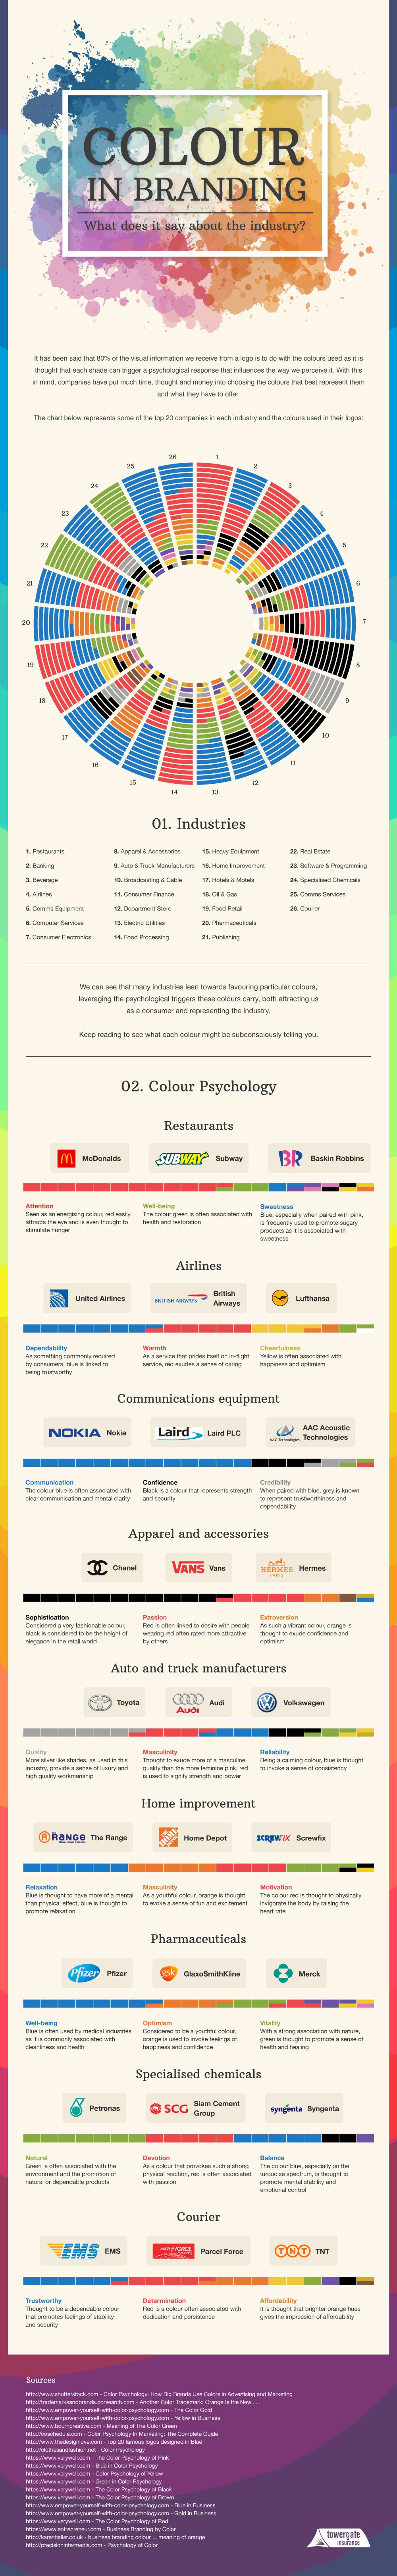 Company logos - how colours persuade you to trust a brand [Infographic]